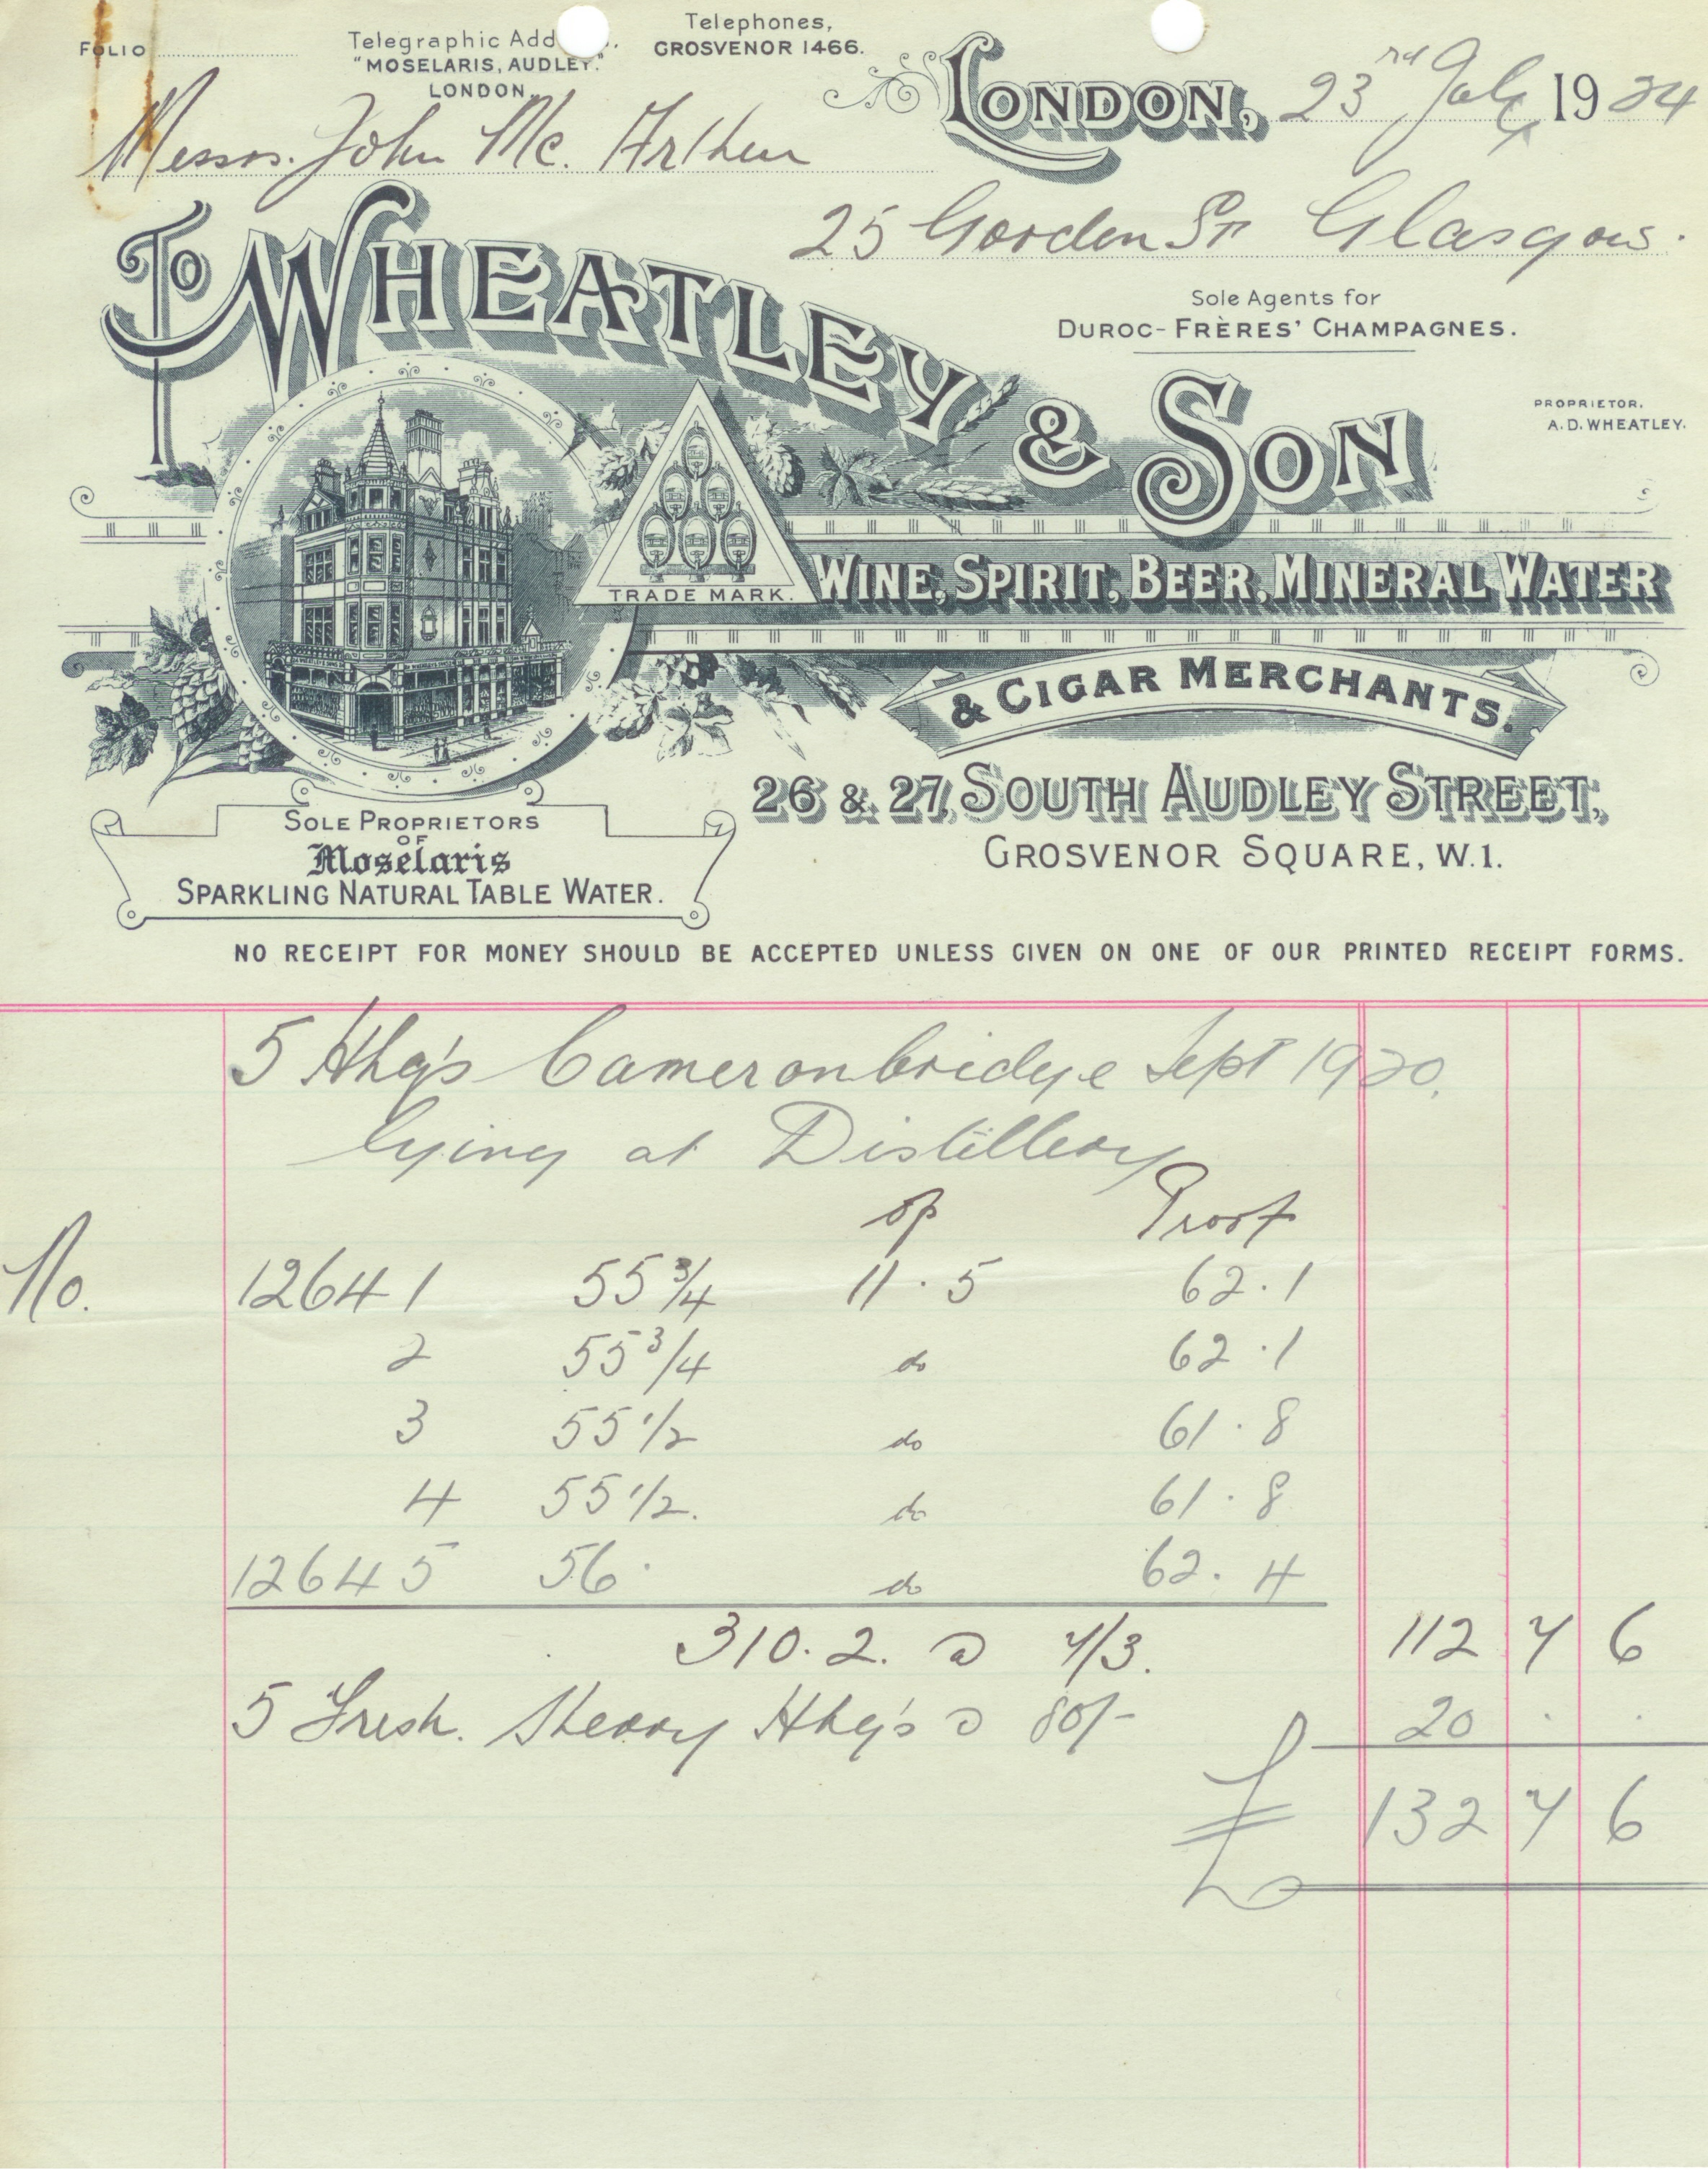 Creating An Invoice Template The Dennis Wheatley Museum Quick Invoice Word with Free Invoice Maker Download A Wheatley  Son Invoice From The S Receipts And Payments Account Format Pdf